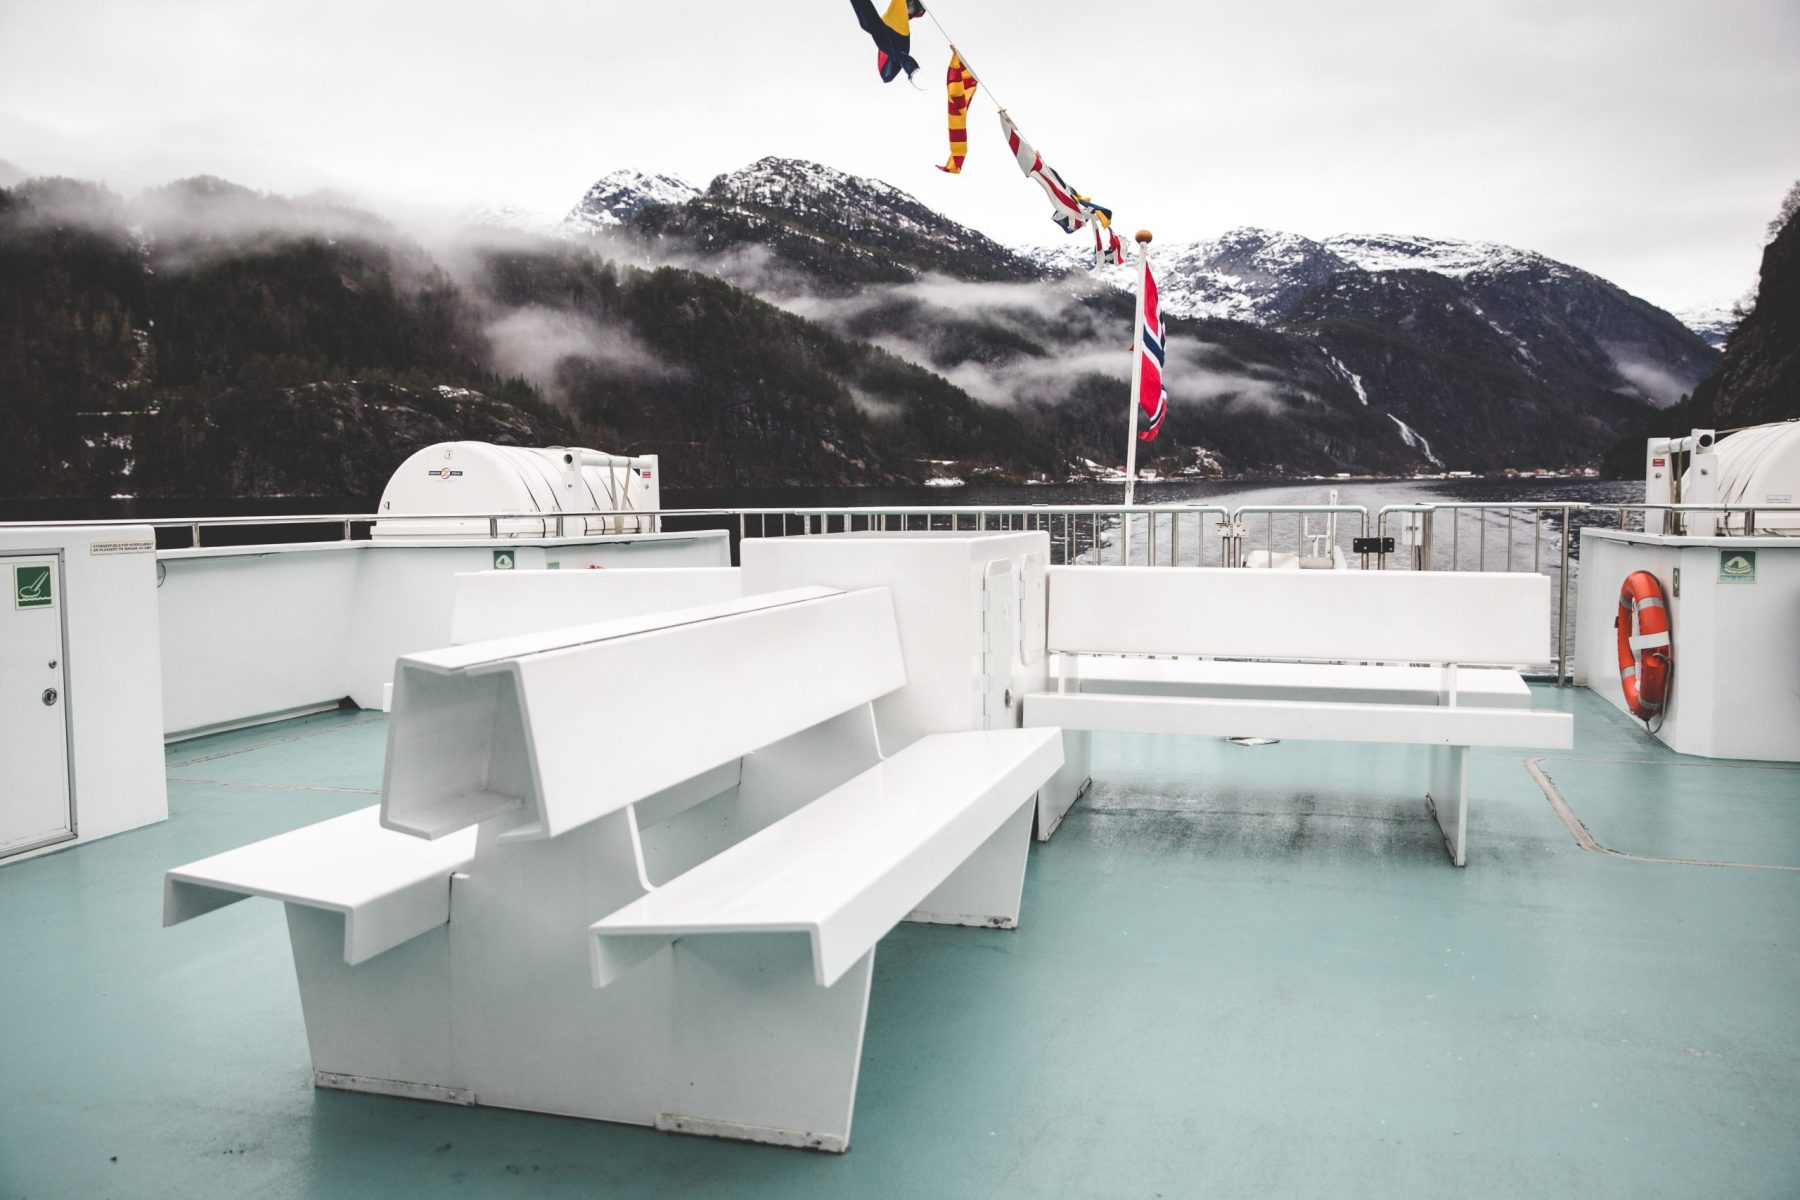 Boat Deck of the Rødne Fjord Cruise Boat